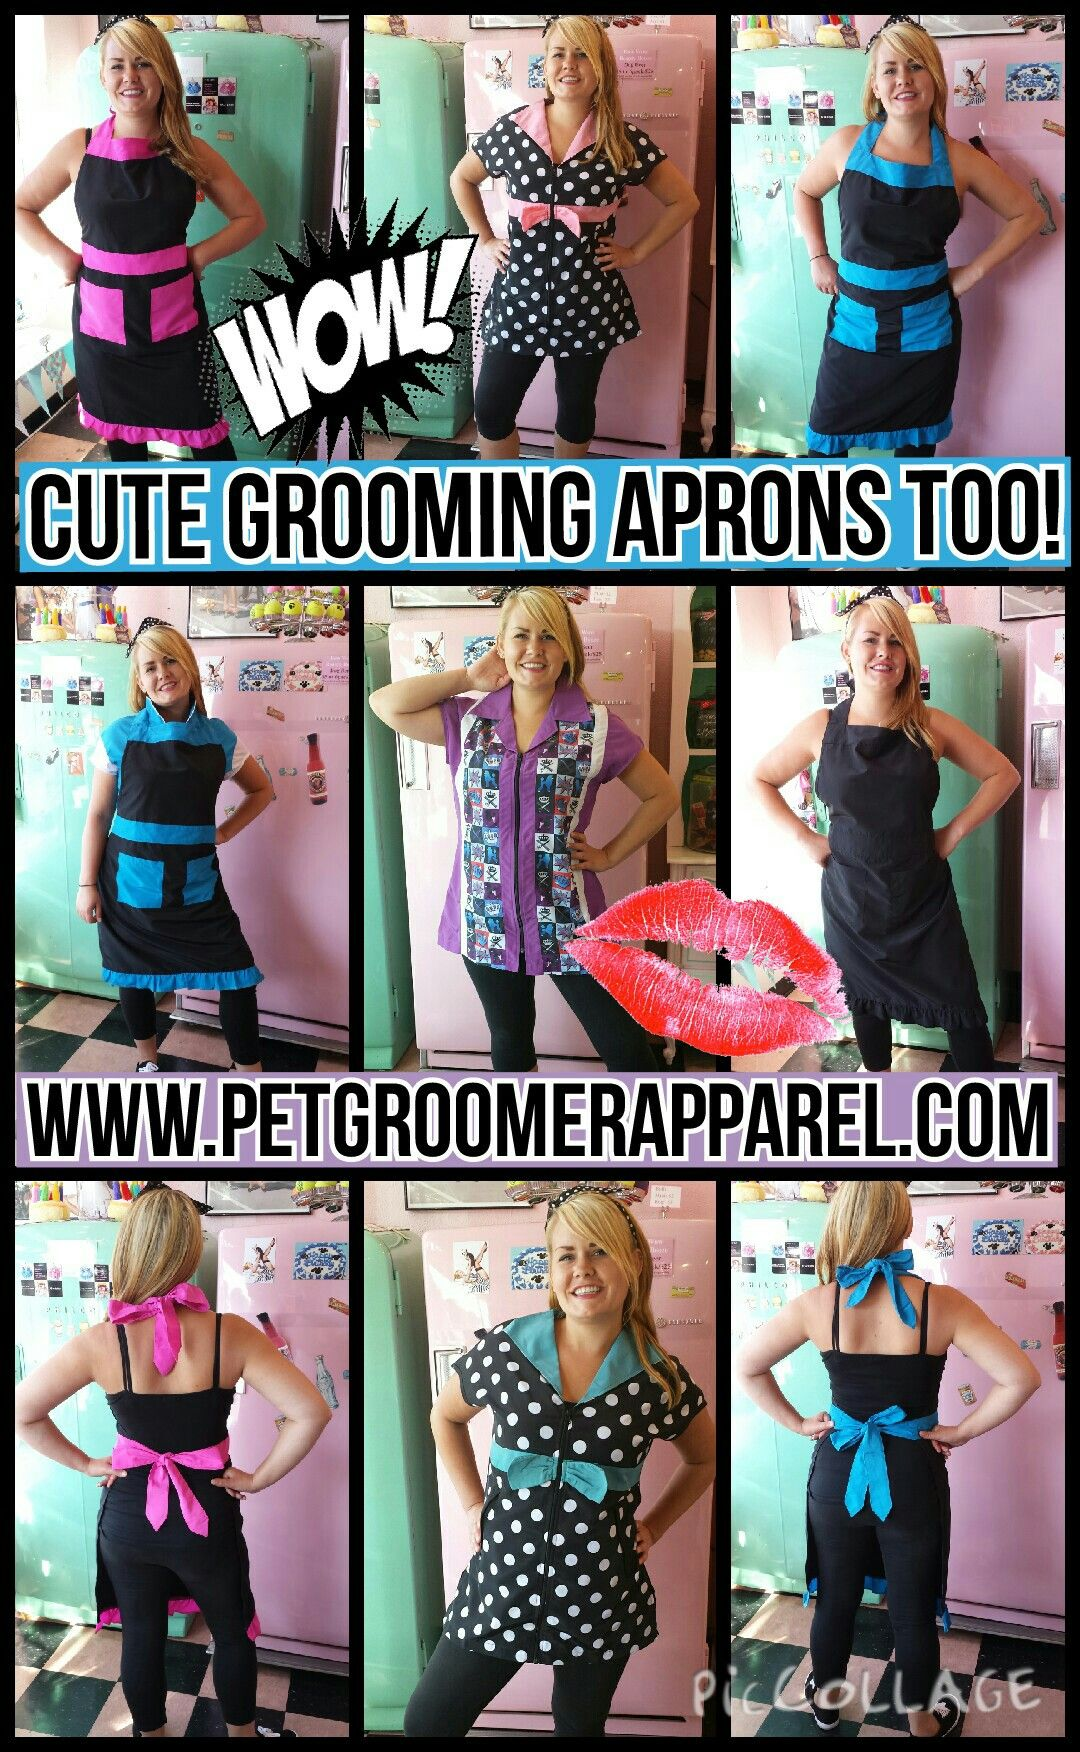 Grooming aprons and grooming apparel for the professional pet grooming aprons and grooming apparel for the professional pet groomers by petgroomerapparel grooming aprons pet grooming apparel solutioingenieria Images